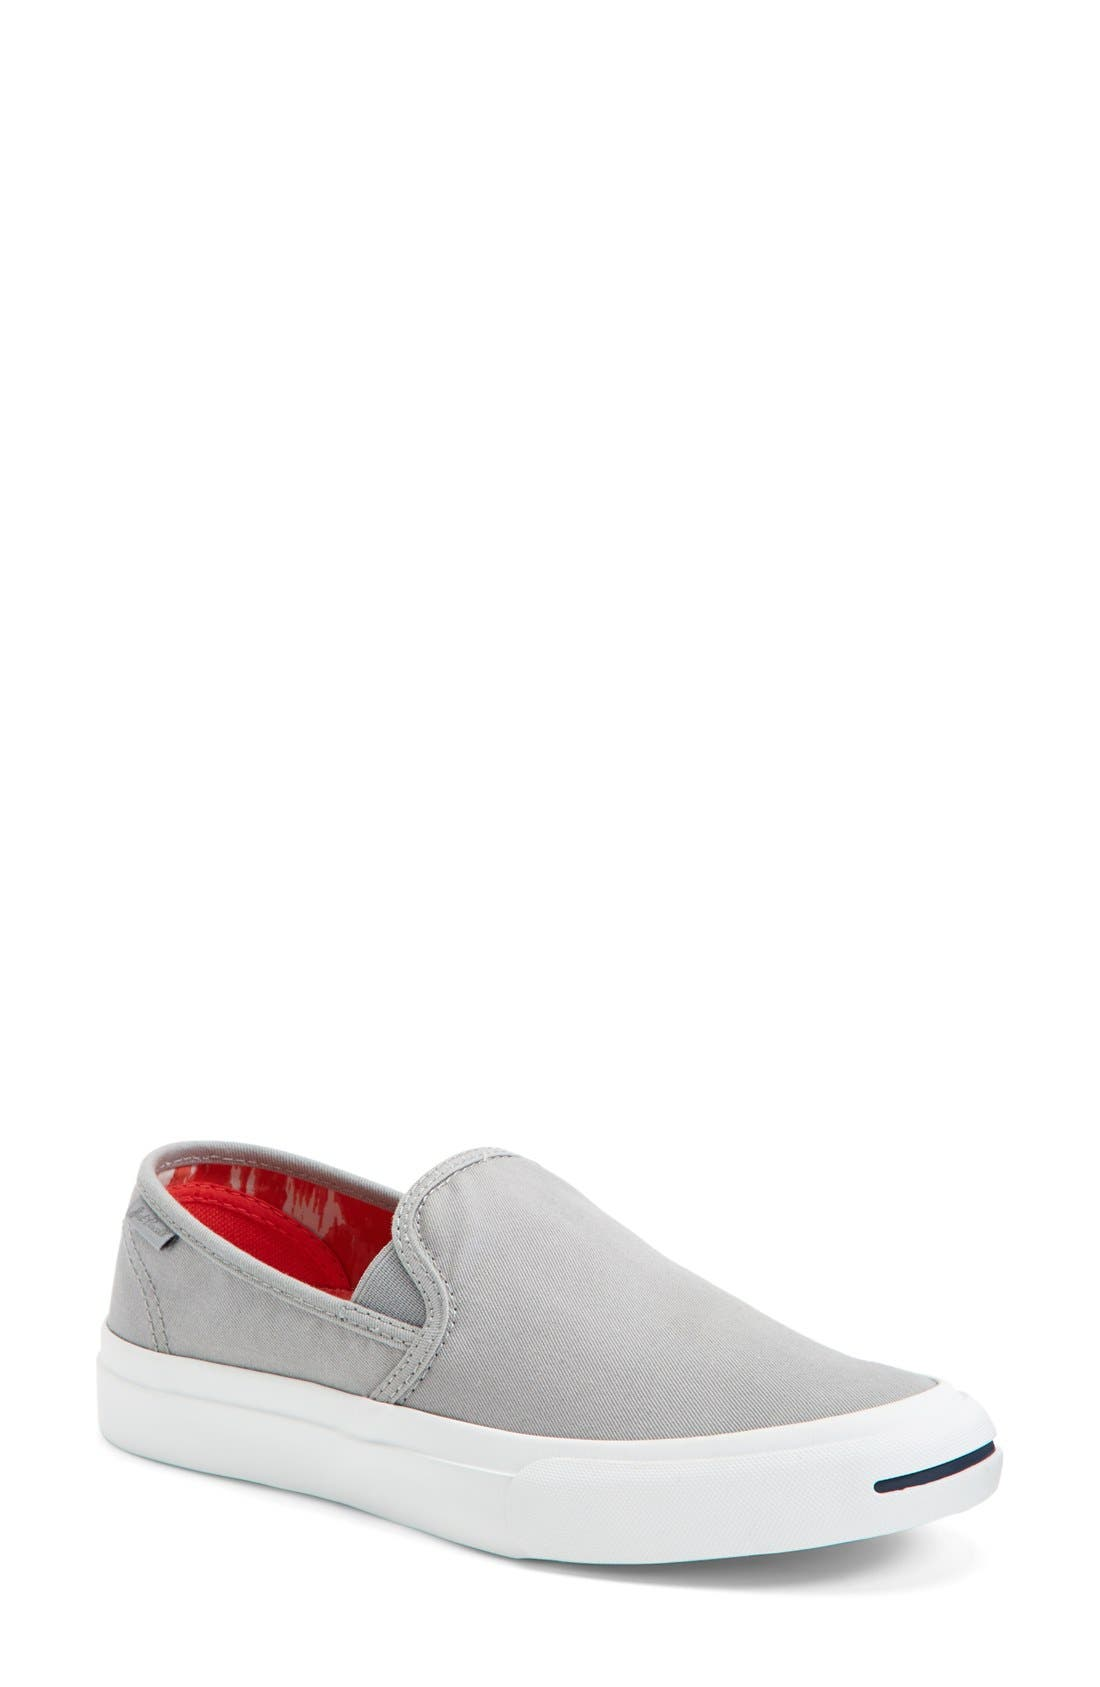 Alternate Image 1 Selected - Converse 'Jack Purcell' Washed Slip-On Sneaker (Women)